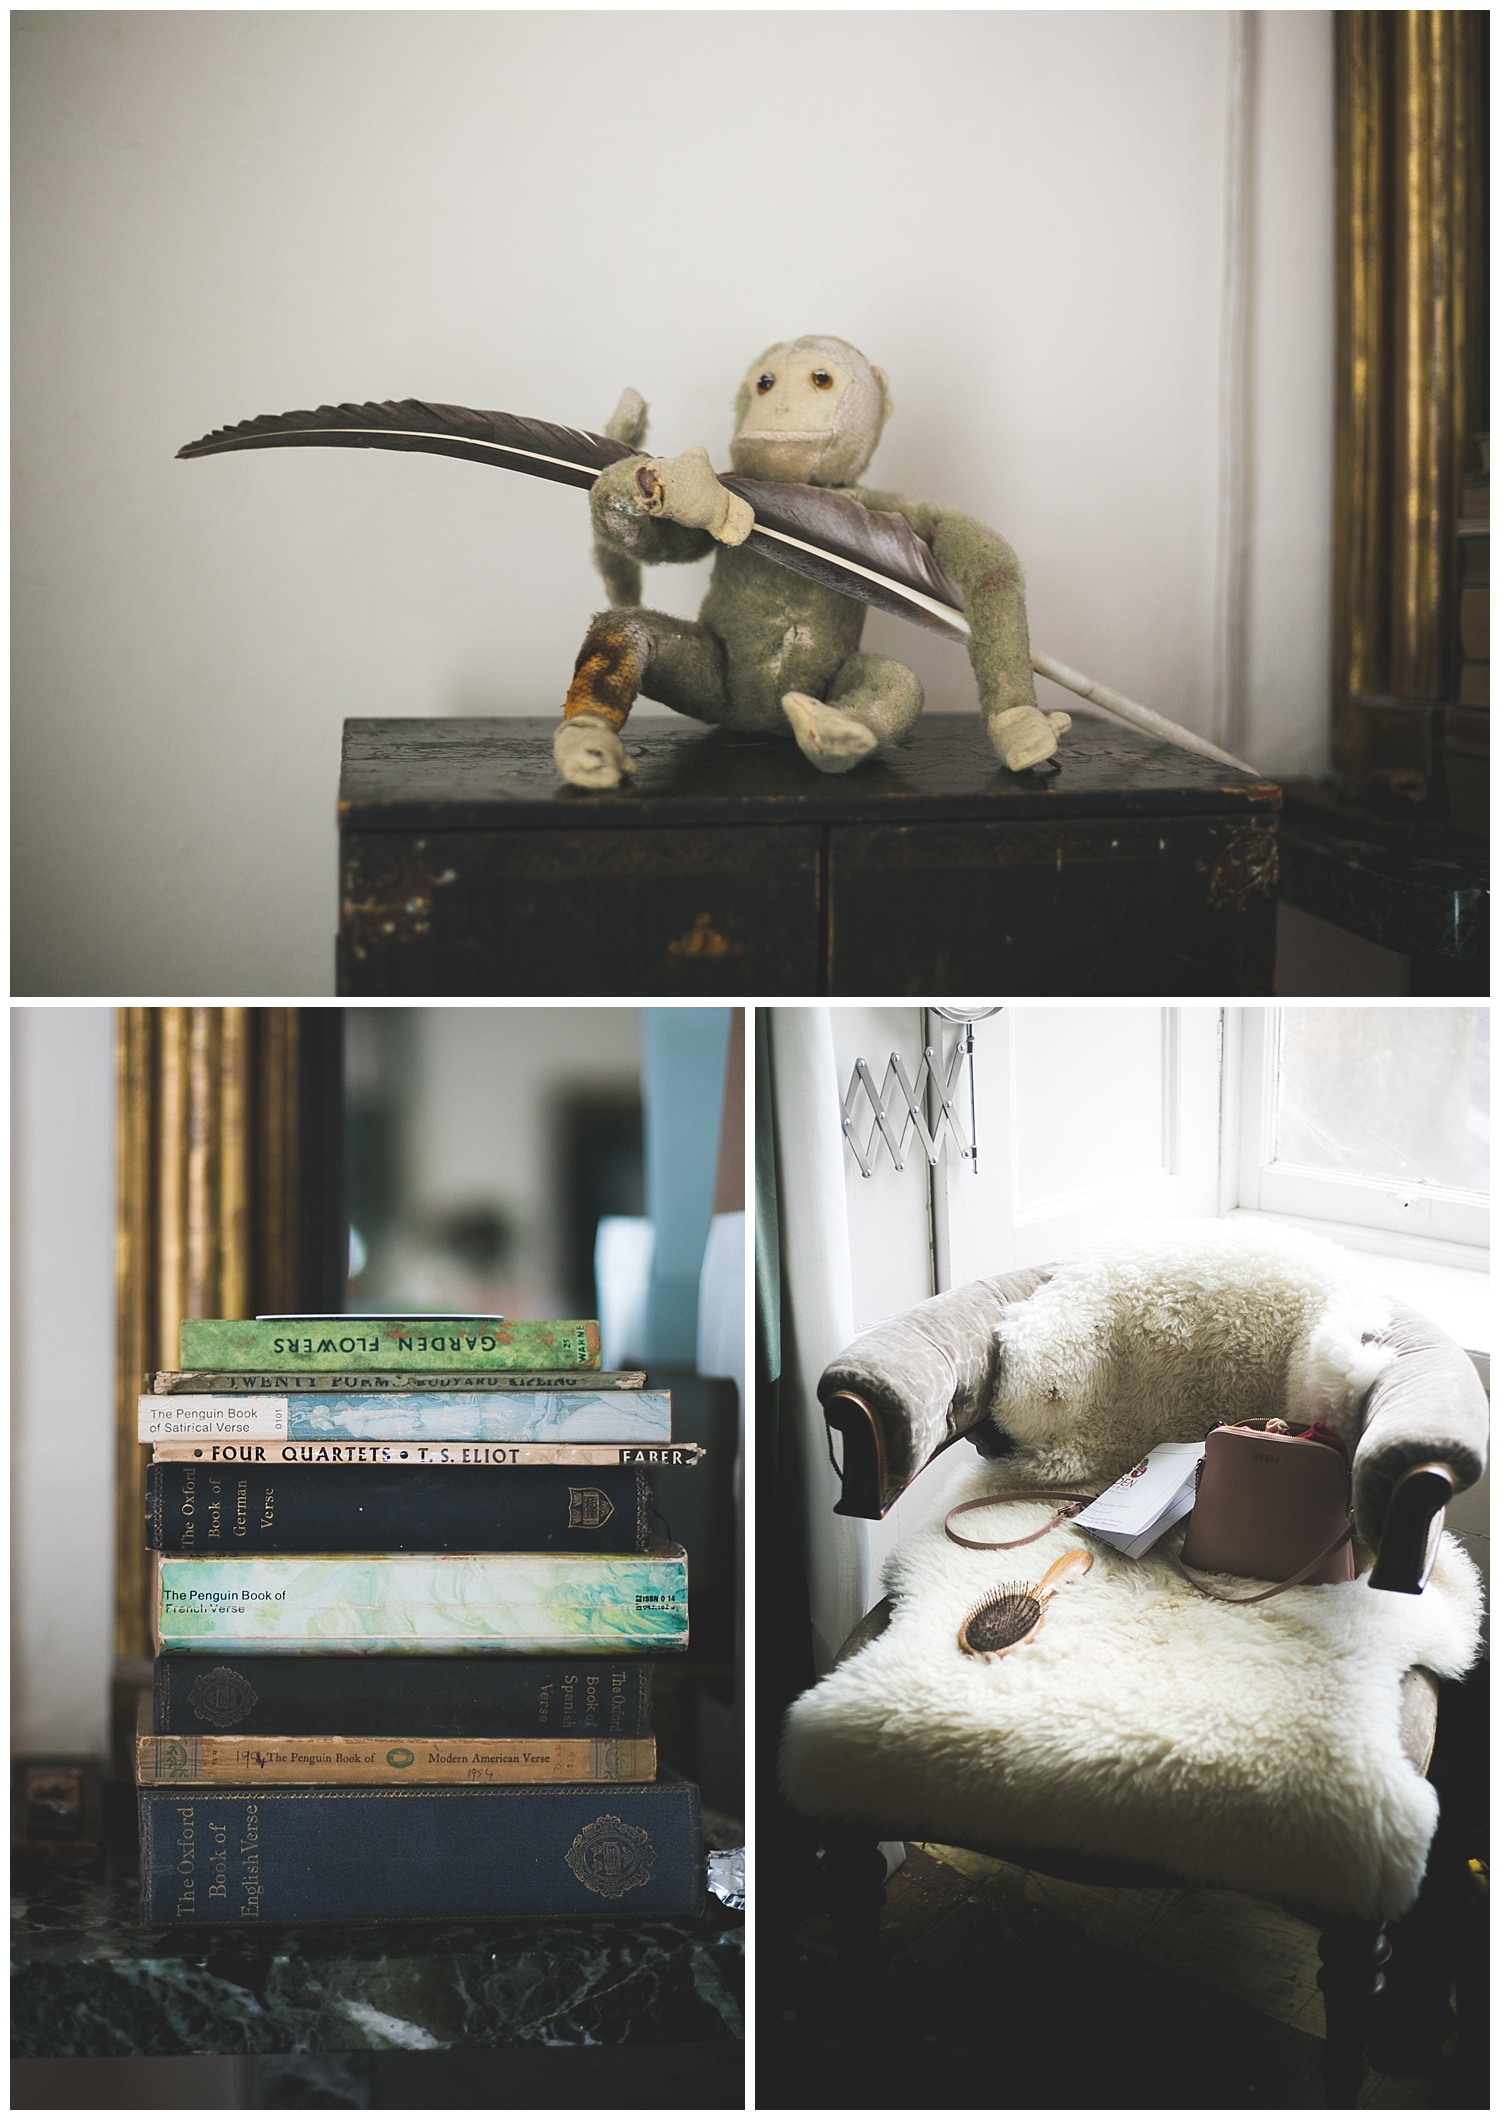 Quirky books and house decorations